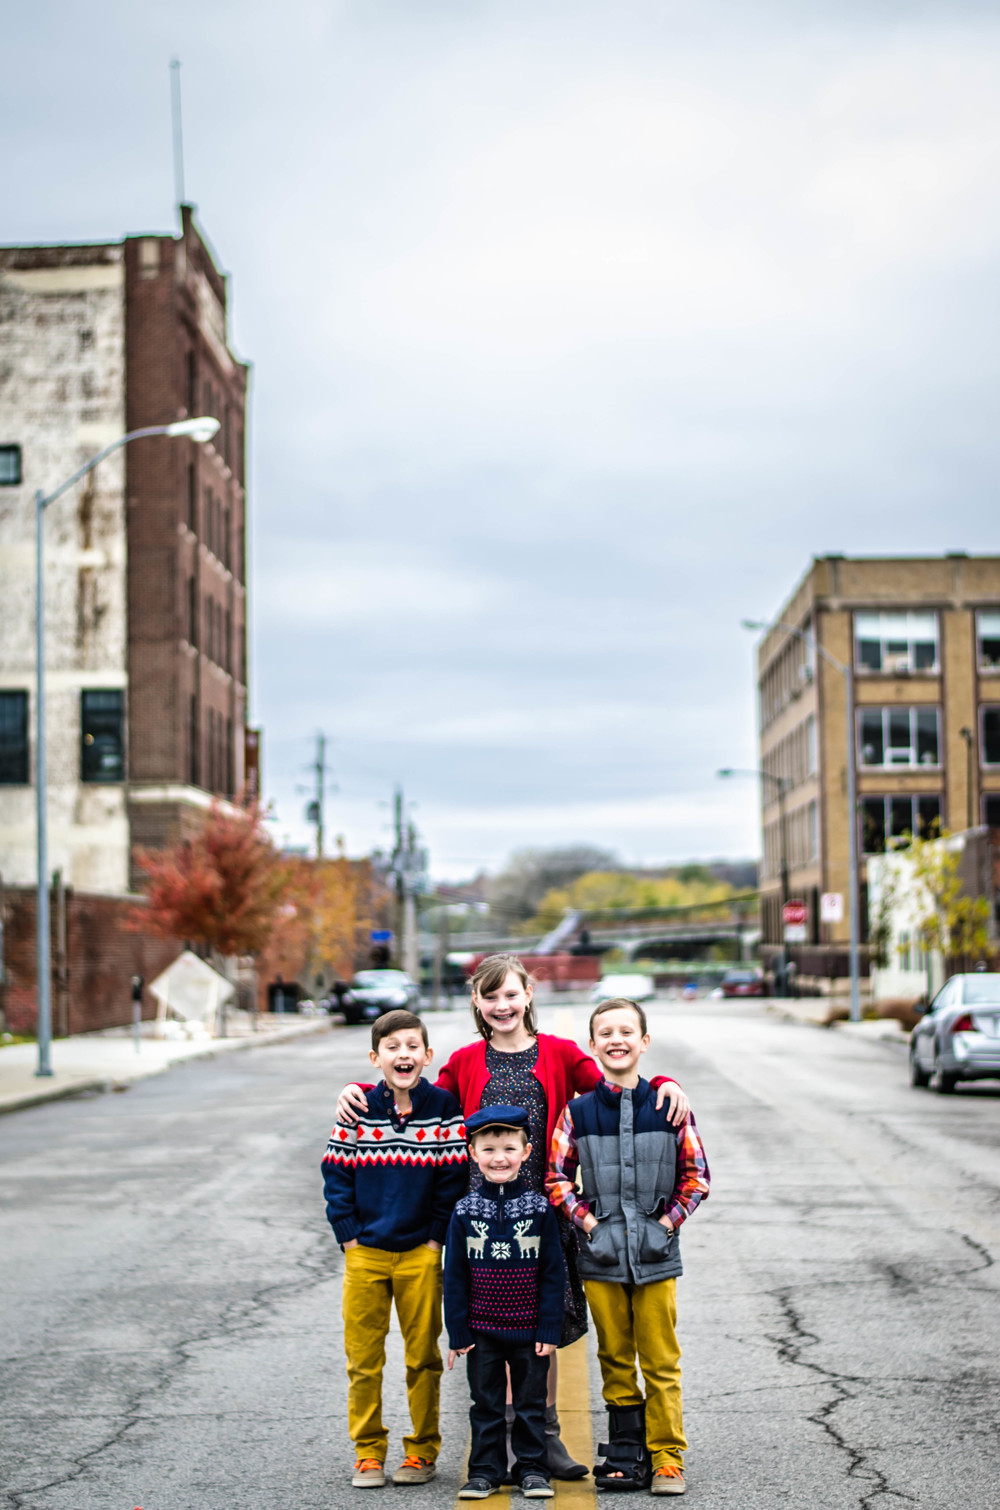 desmoinesfamily (12 of 50).jpg